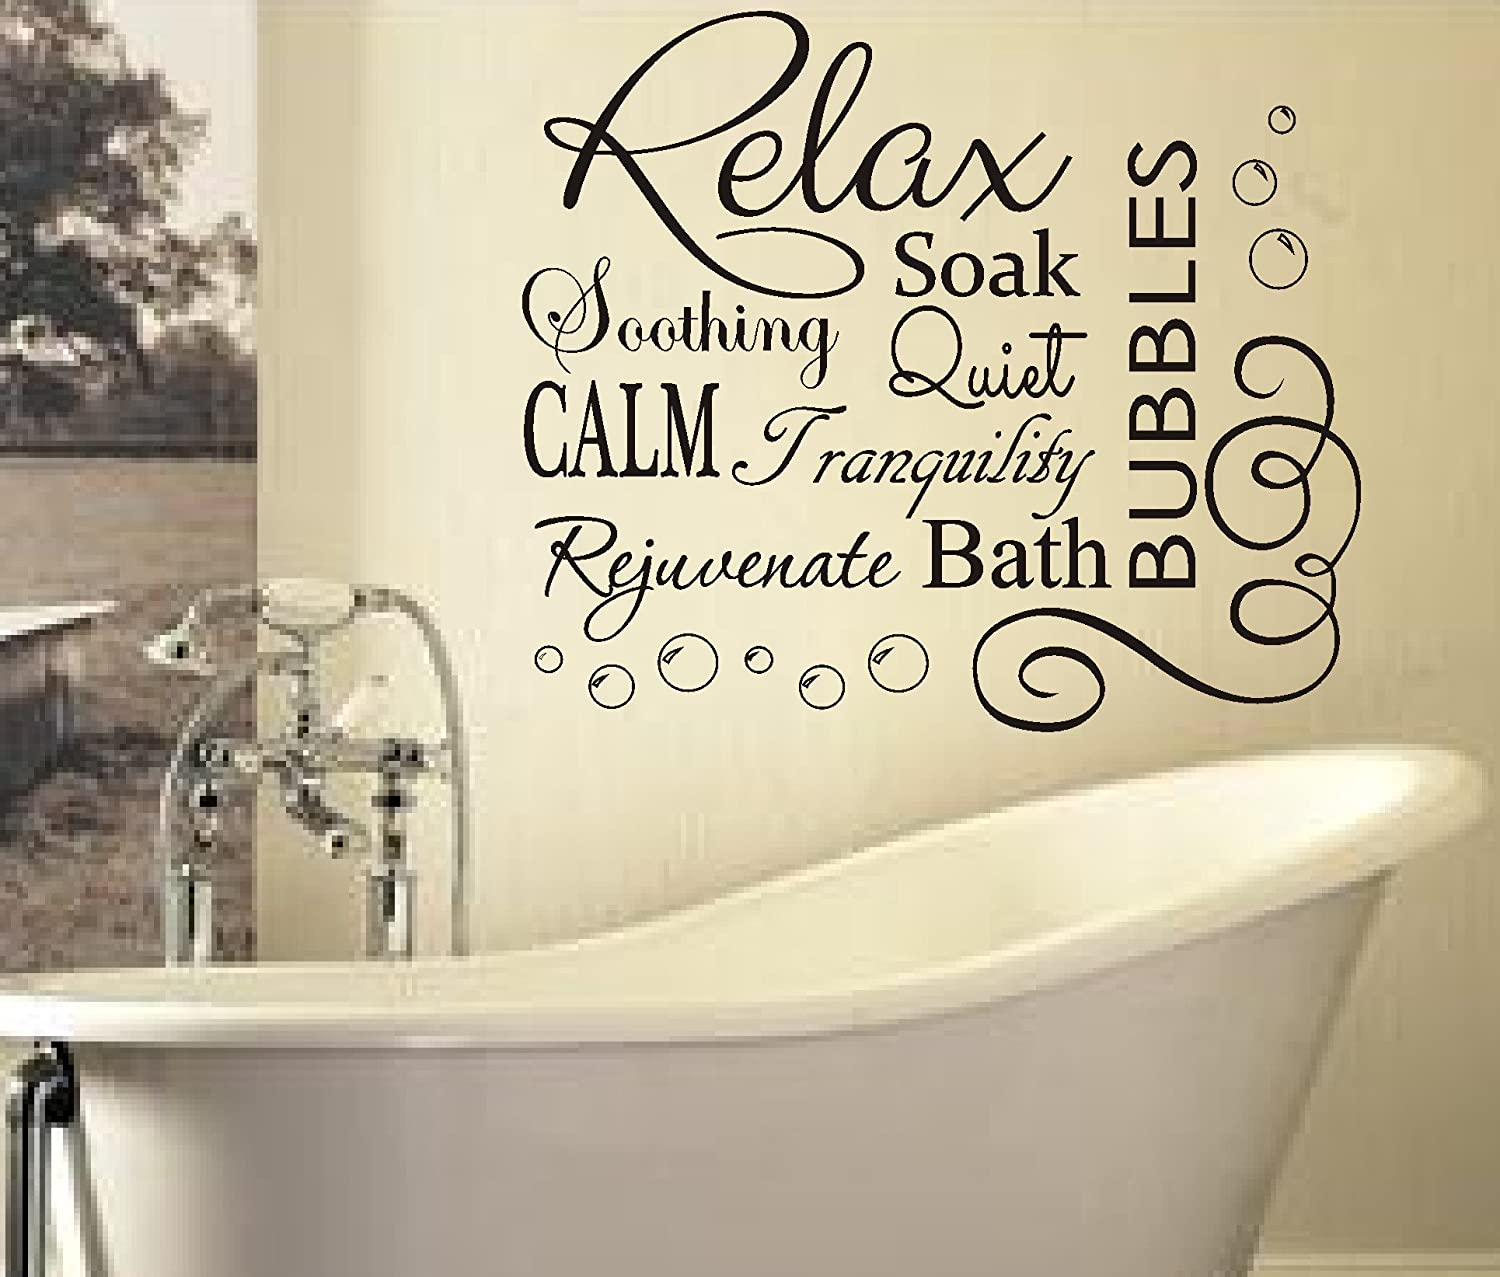 bathroom wall art. RELAX SOAK BUBBLES BATH AR QUOTE WALL ART STICKER DECAL VINYL DIY & Bathroom Wall Art | Home Decor u0026 Renovation Ideas